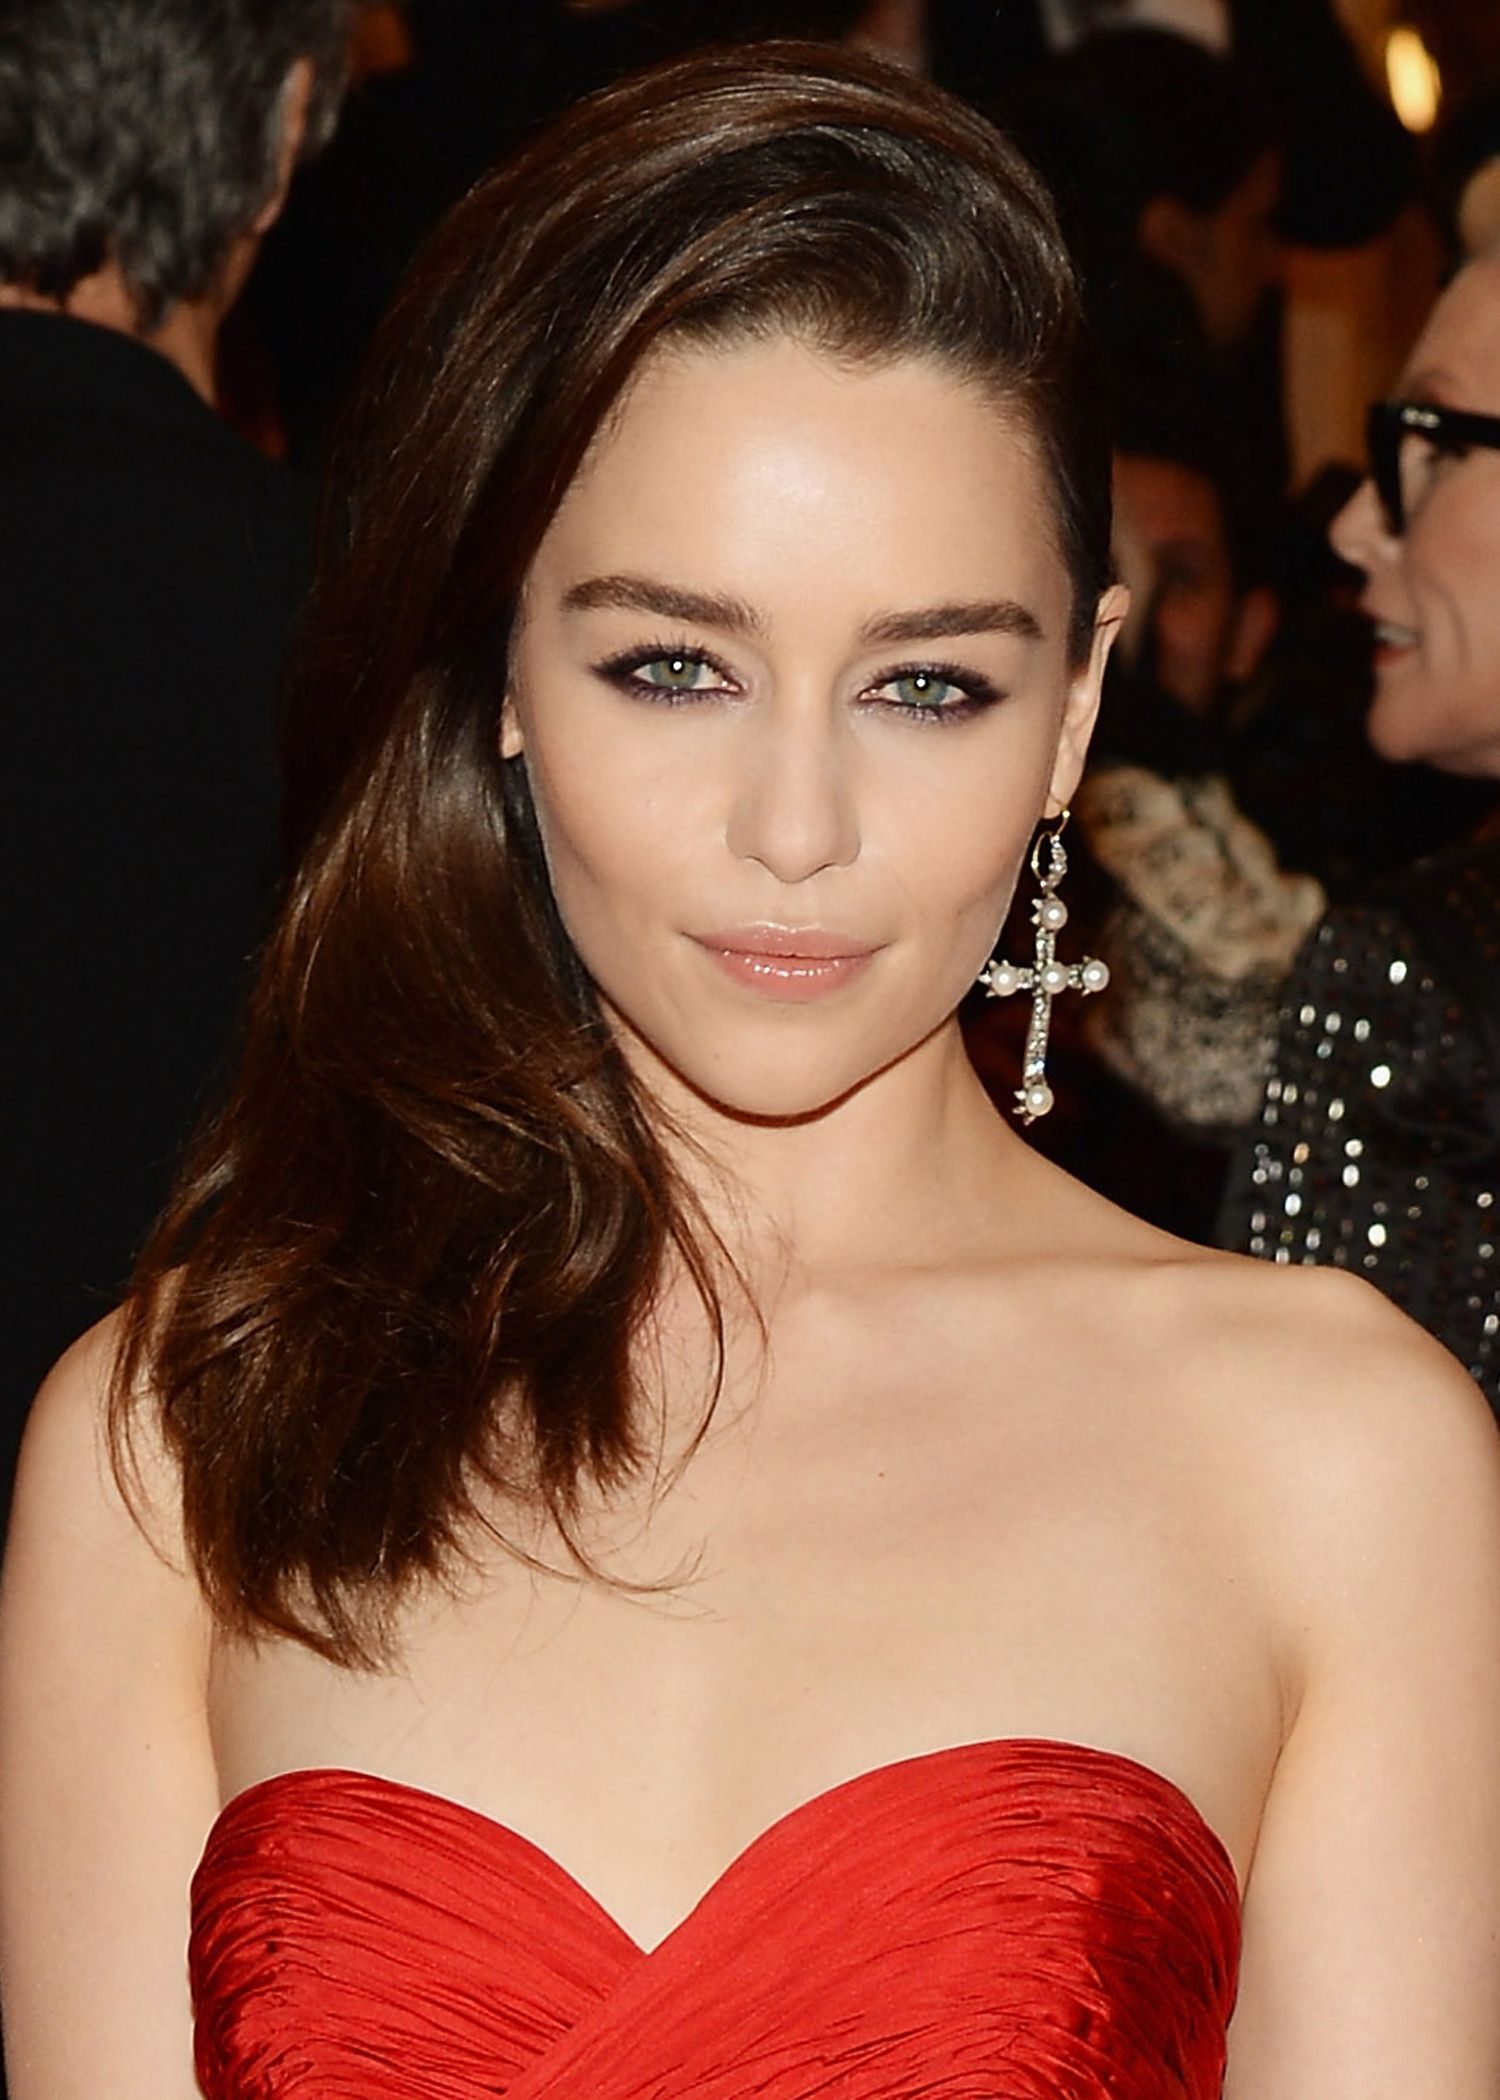 Emilia Clarke was Stunned by the Upcoming Season of Game of Thrones 01/16/2018 50